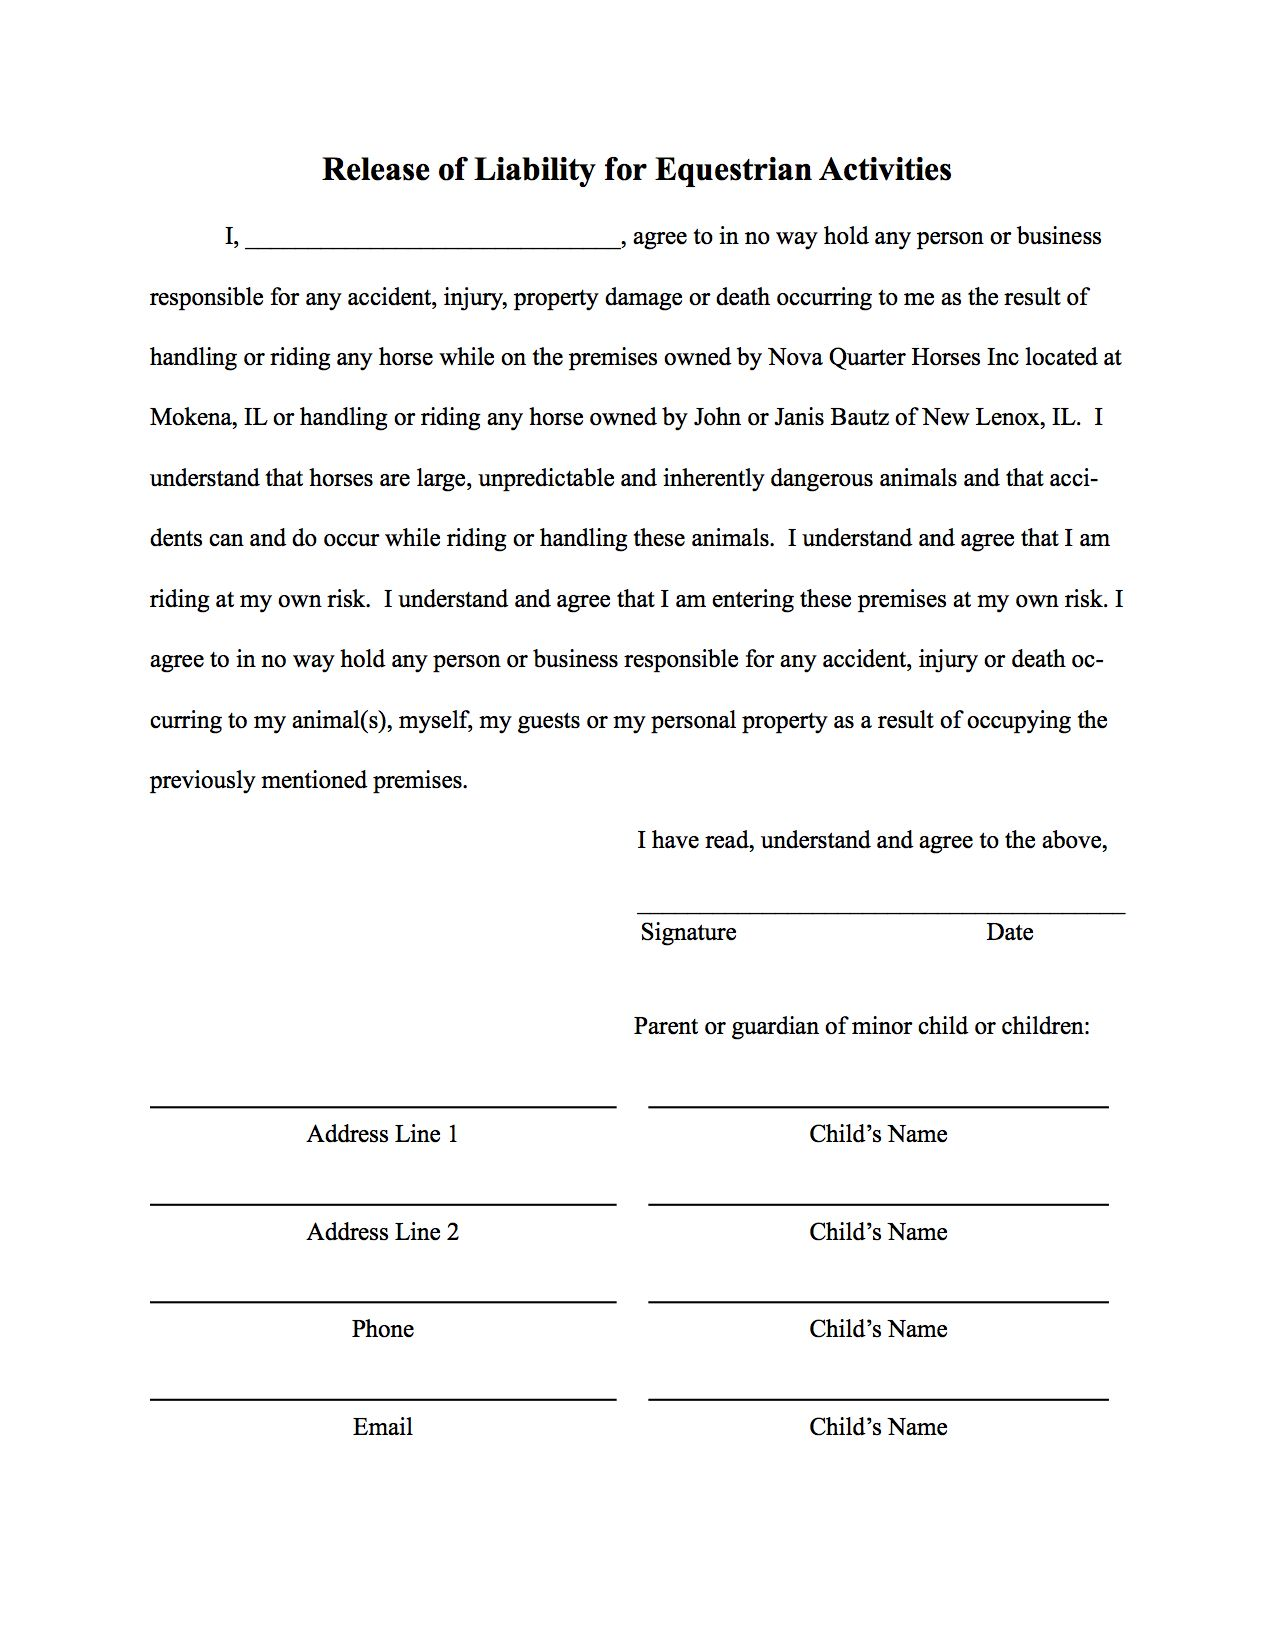 Beautiful Liability Waiver Form Template Release Of Liability Form Waiver Of Liability  Template With Sample, Liability Waiver Template Free Word Templates  Liability, ...  Liability Release Form Template Free